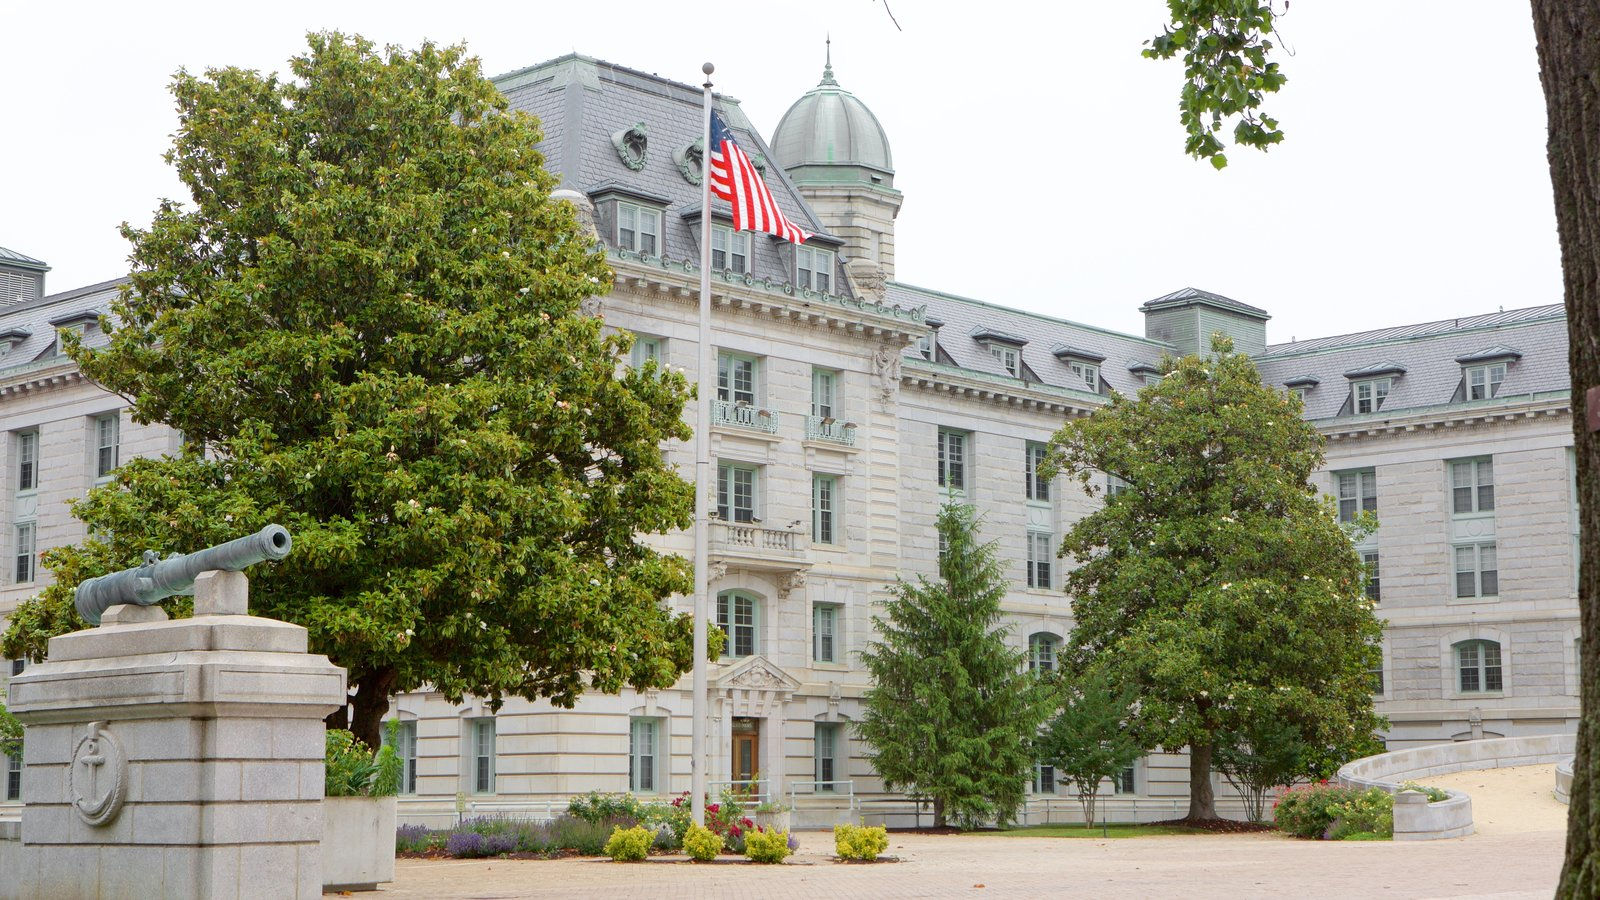 U.S. Naval Academy which includes military items and heritage architecture